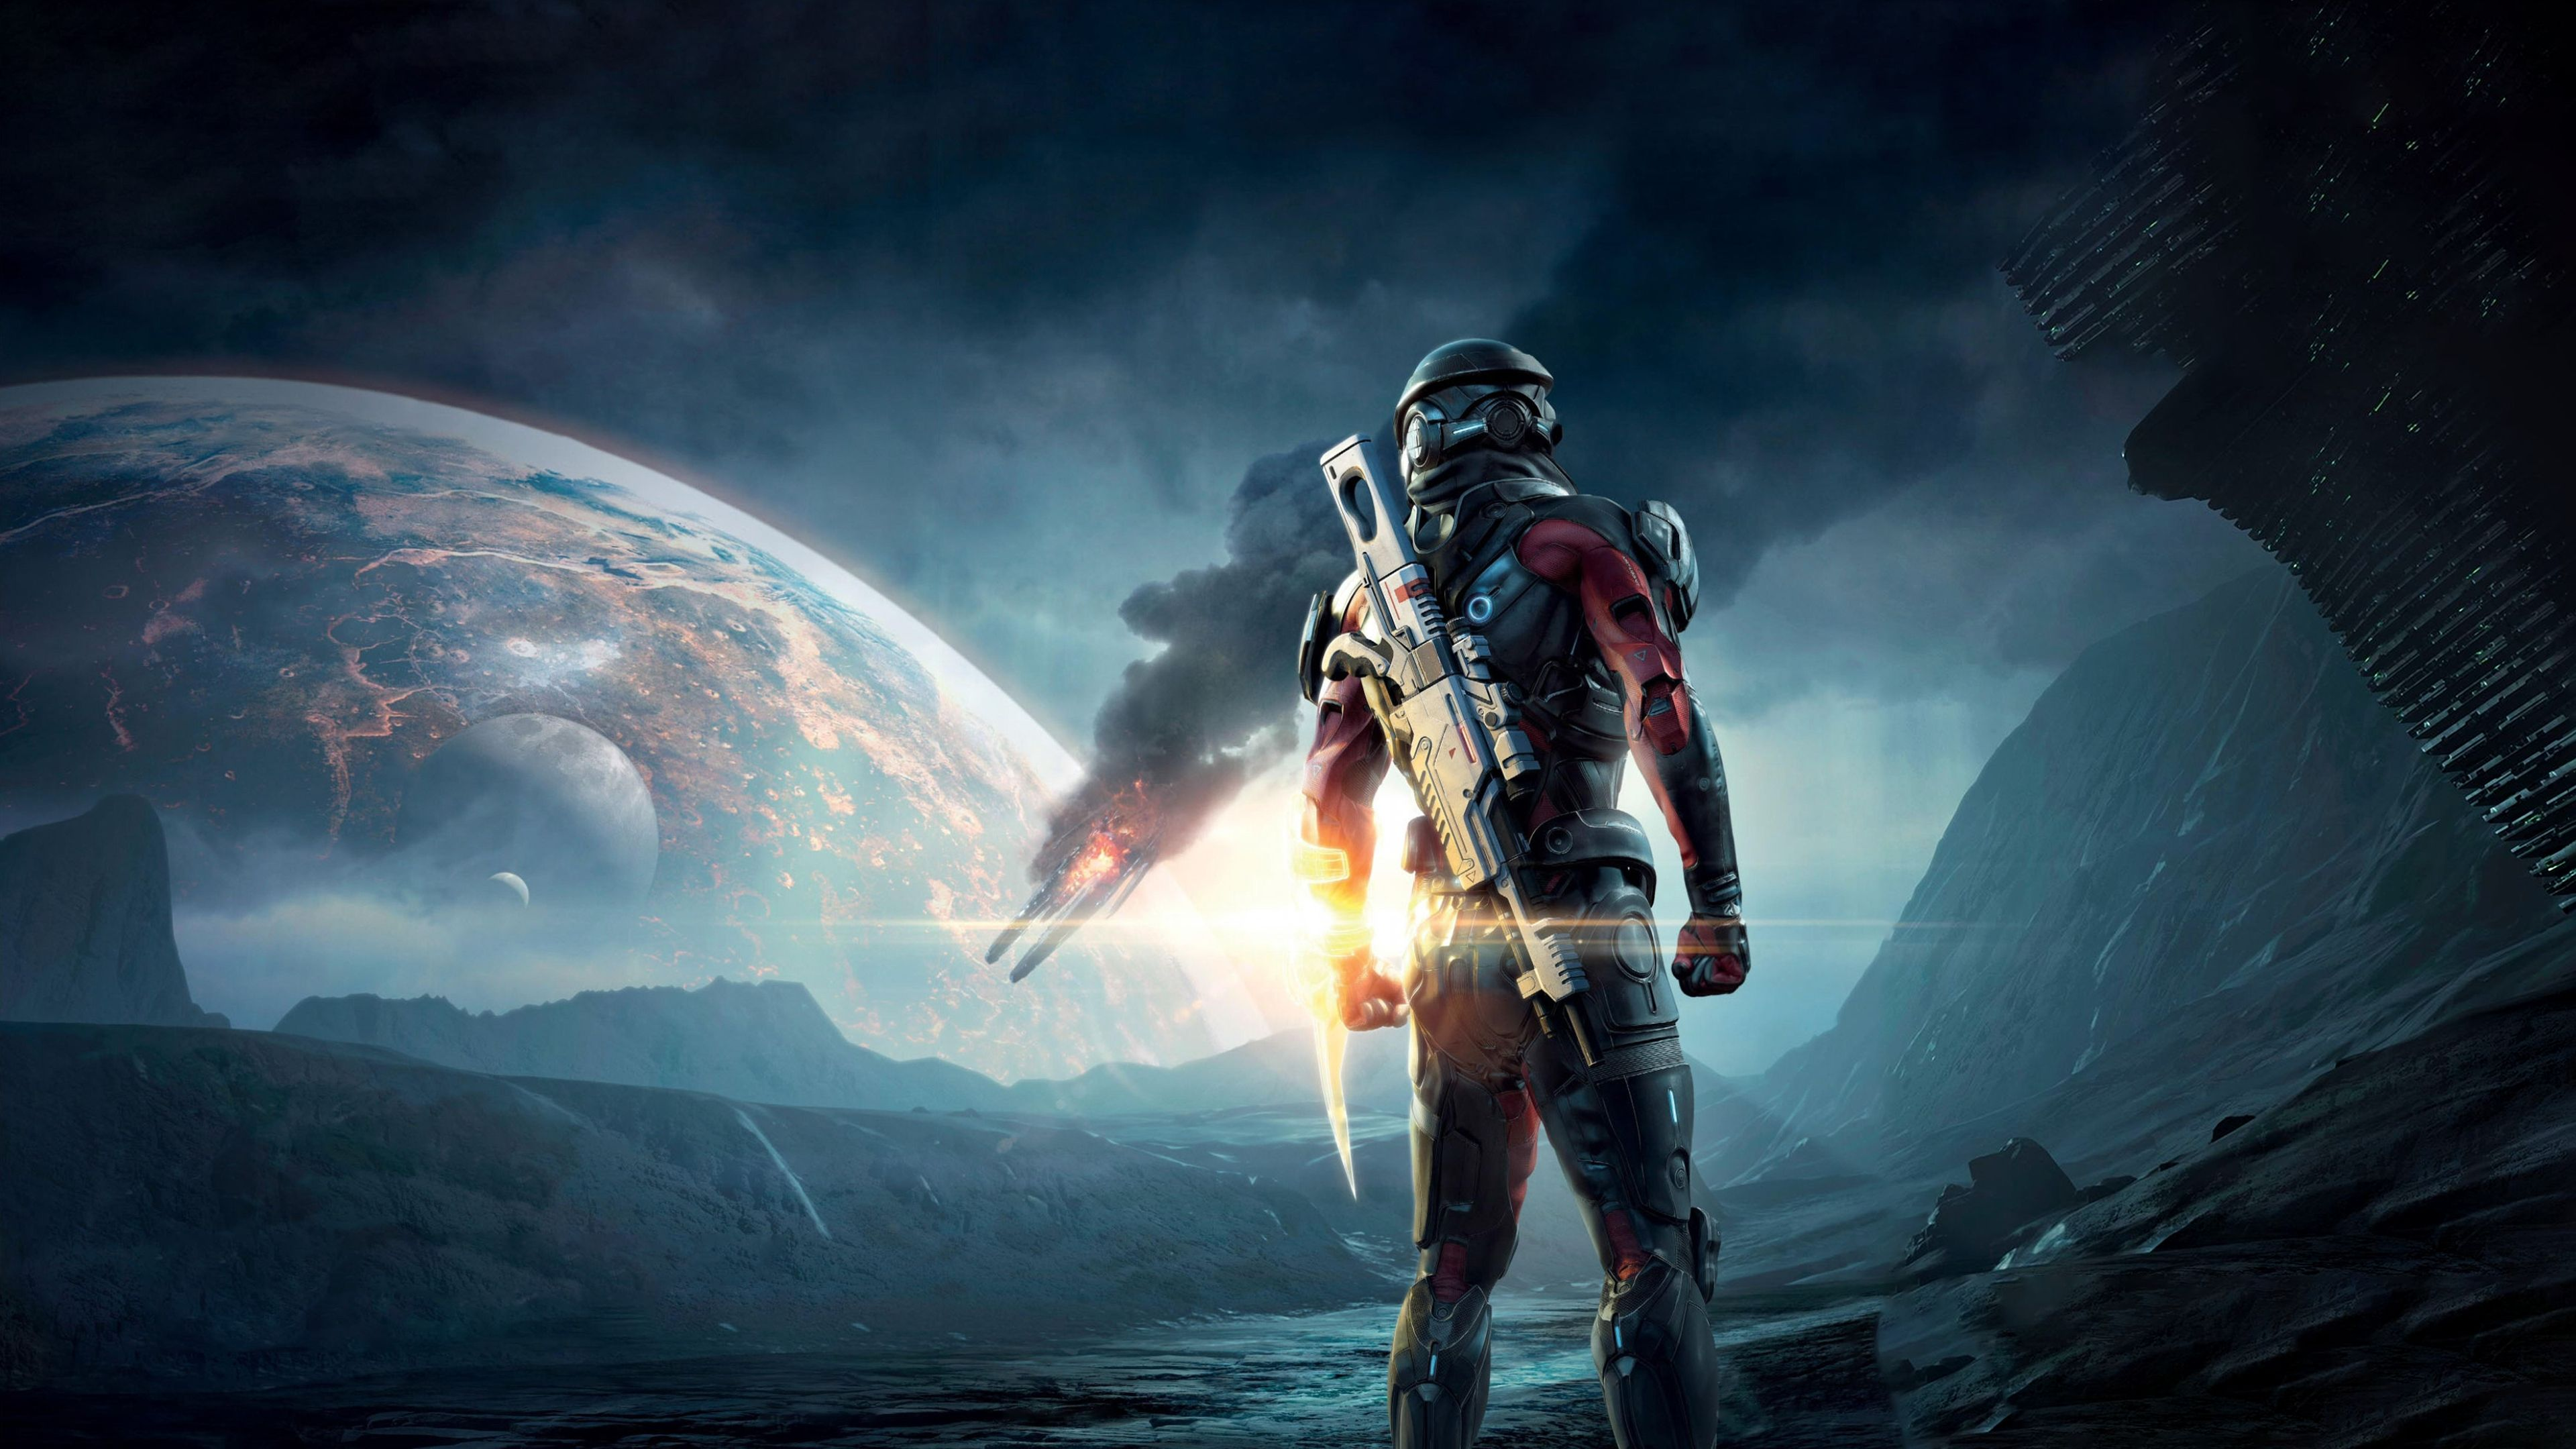 10 Best Mass Effect Wall Paper Full Hd 1080p For Pc Desktop With